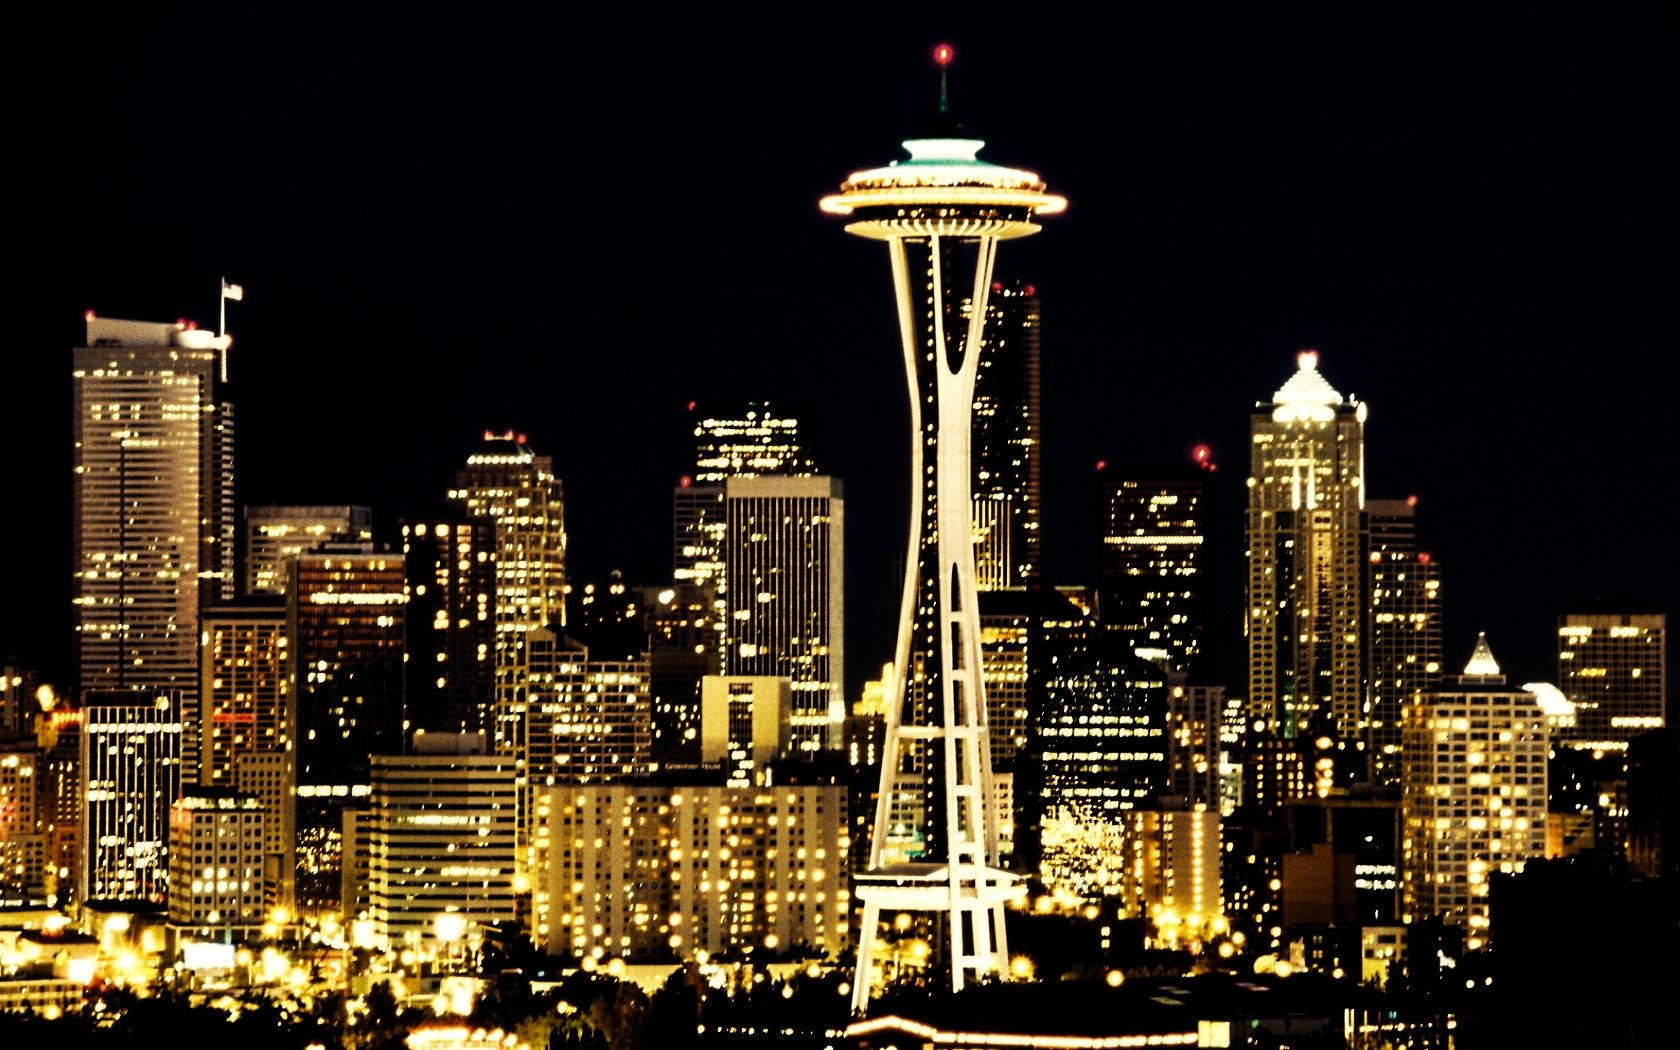 Seattle City Lights Hd Wallpapers 1680x1050 pixel City HD Wallpaper 1680x1050